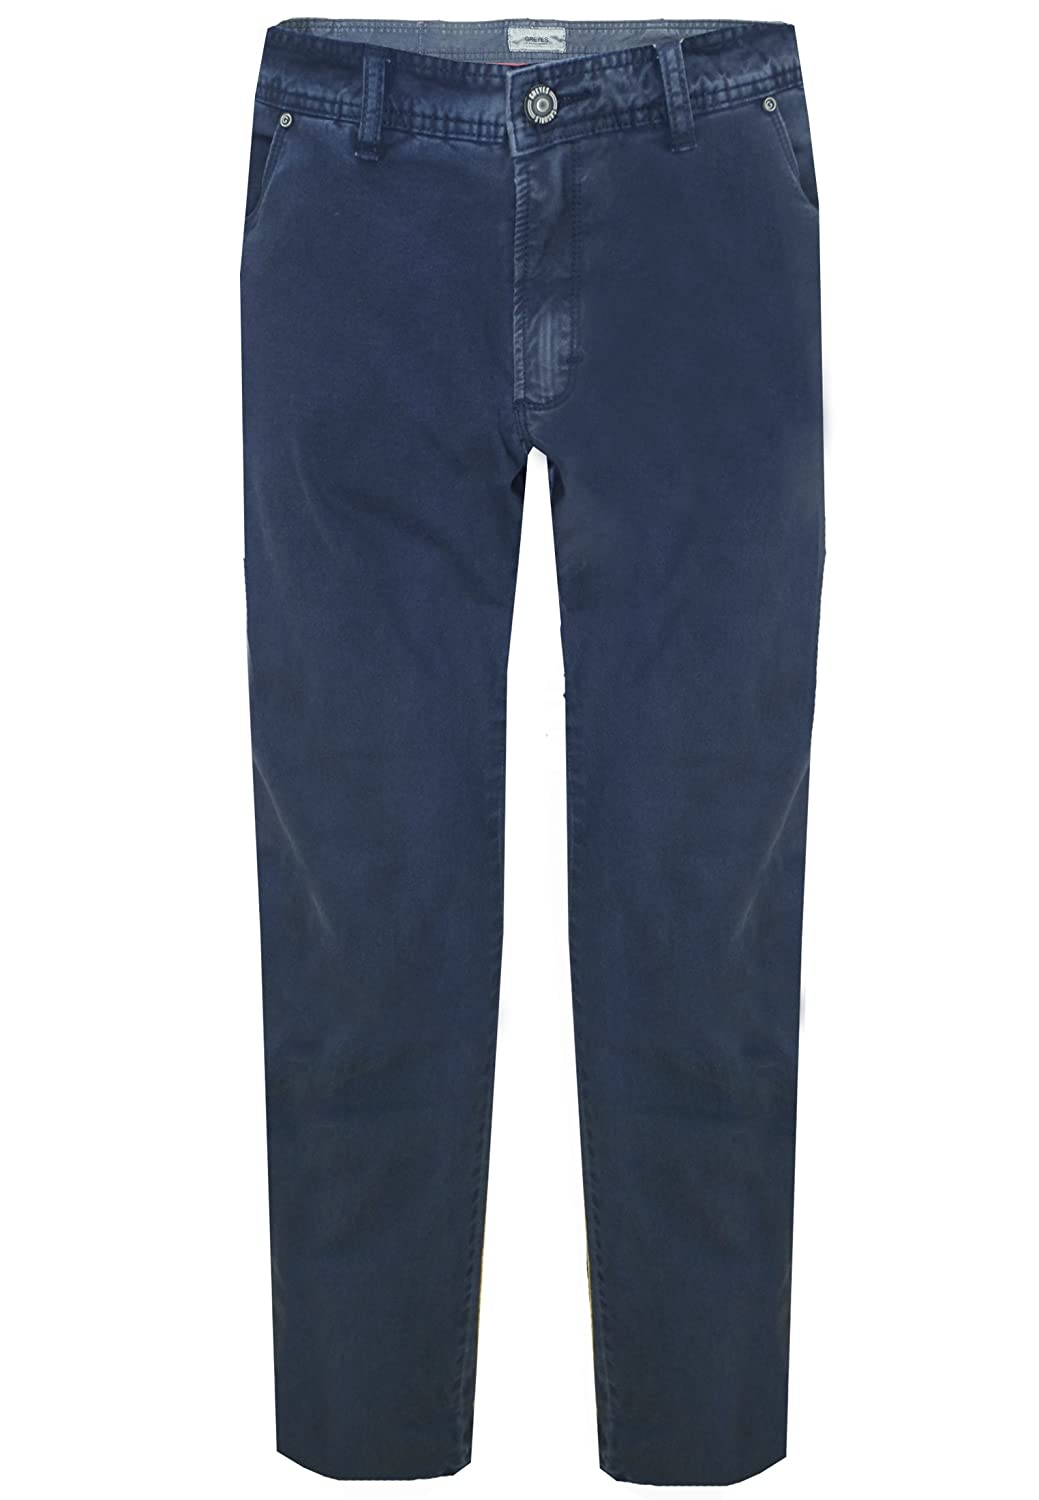 Greyes Men's Trousers Blue Navy 38